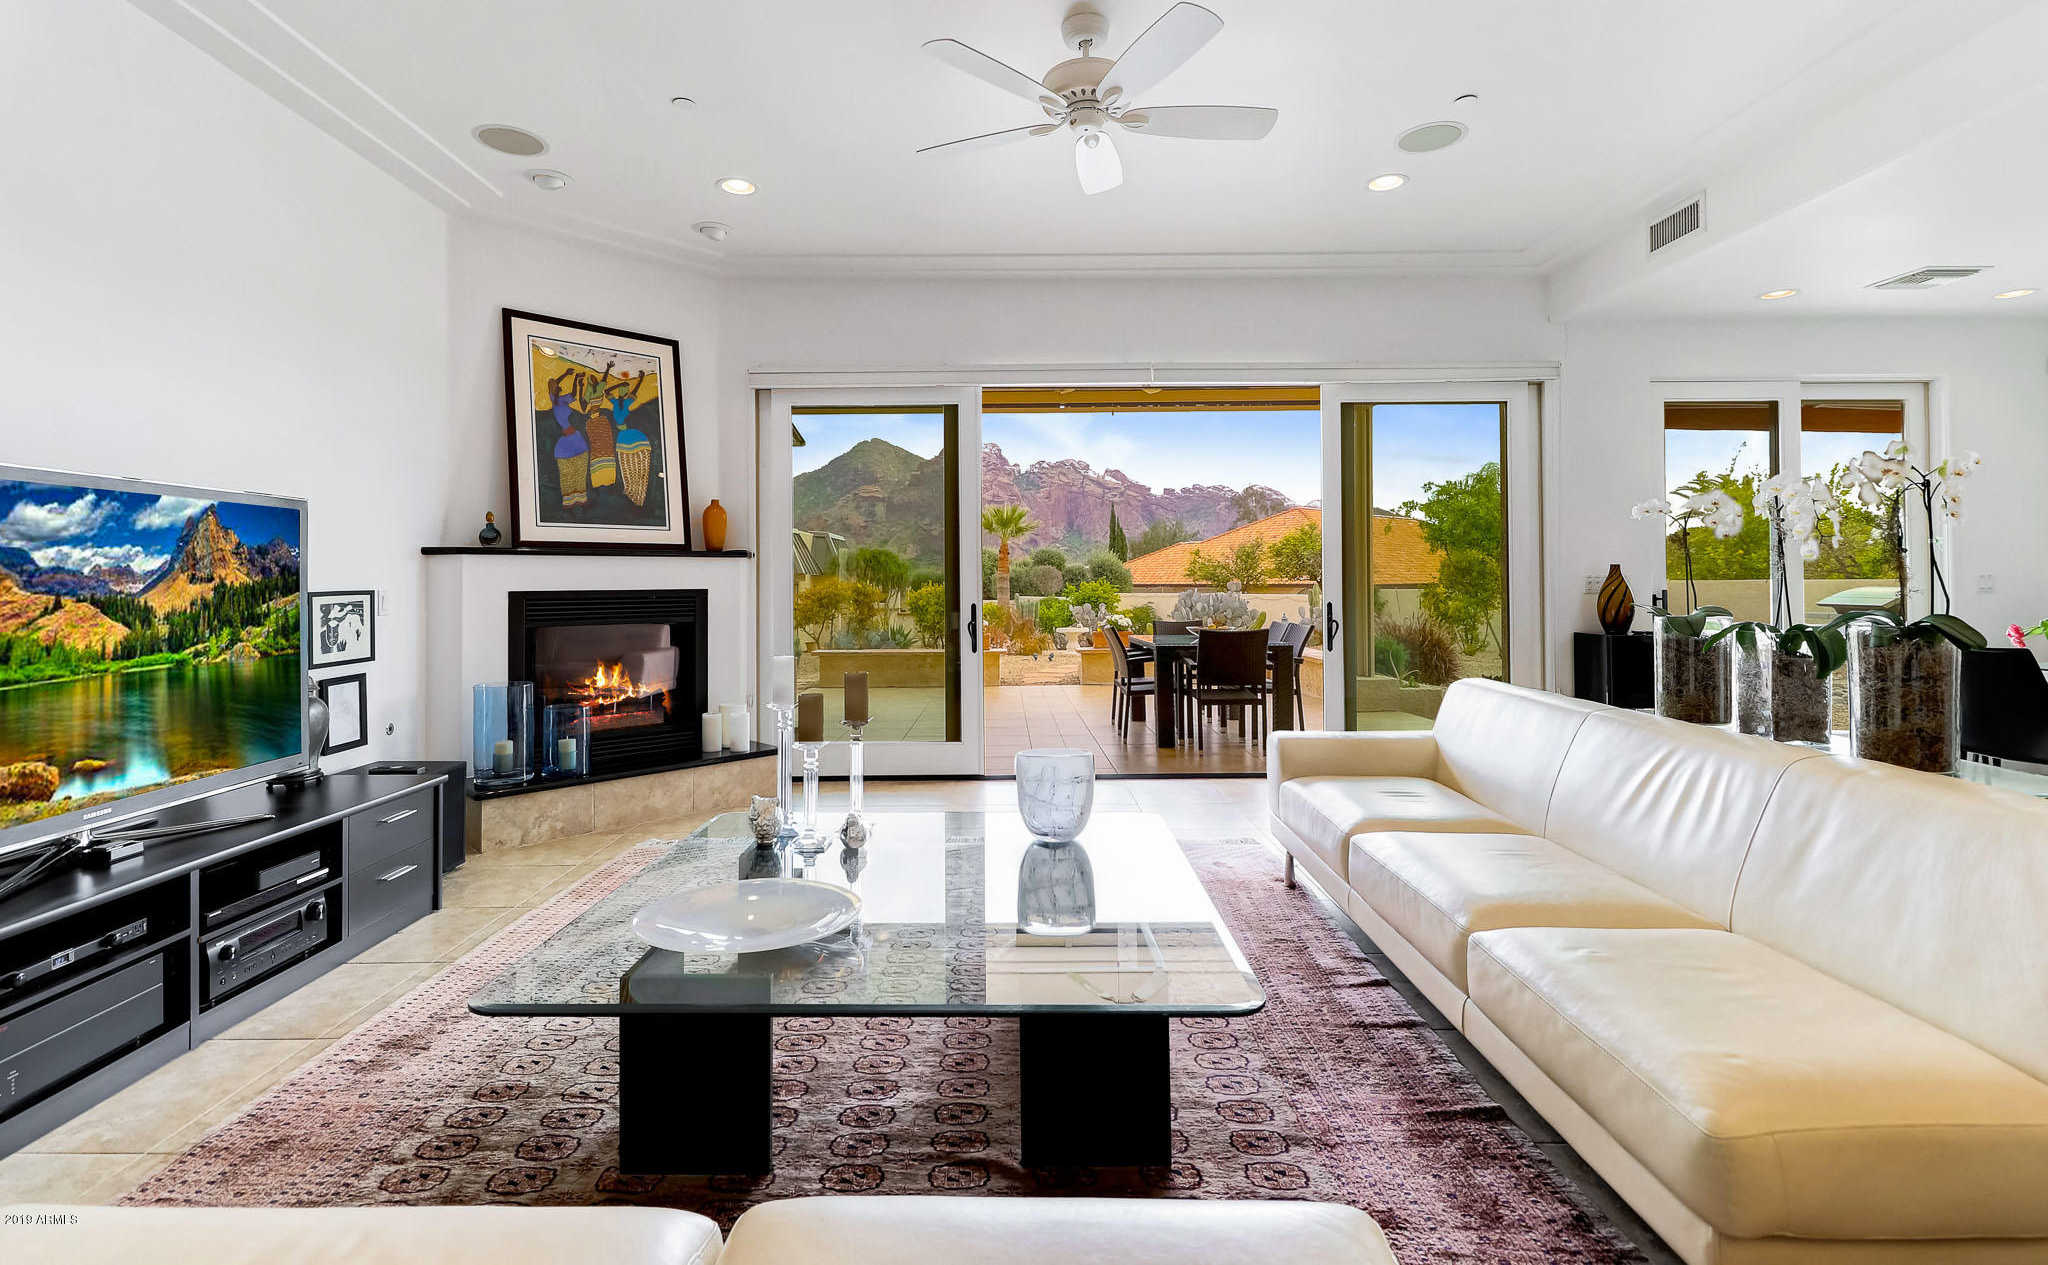 $1,850,000 - 8Br/6Ba - Home for Sale in Camelhead North, Paradise Valley